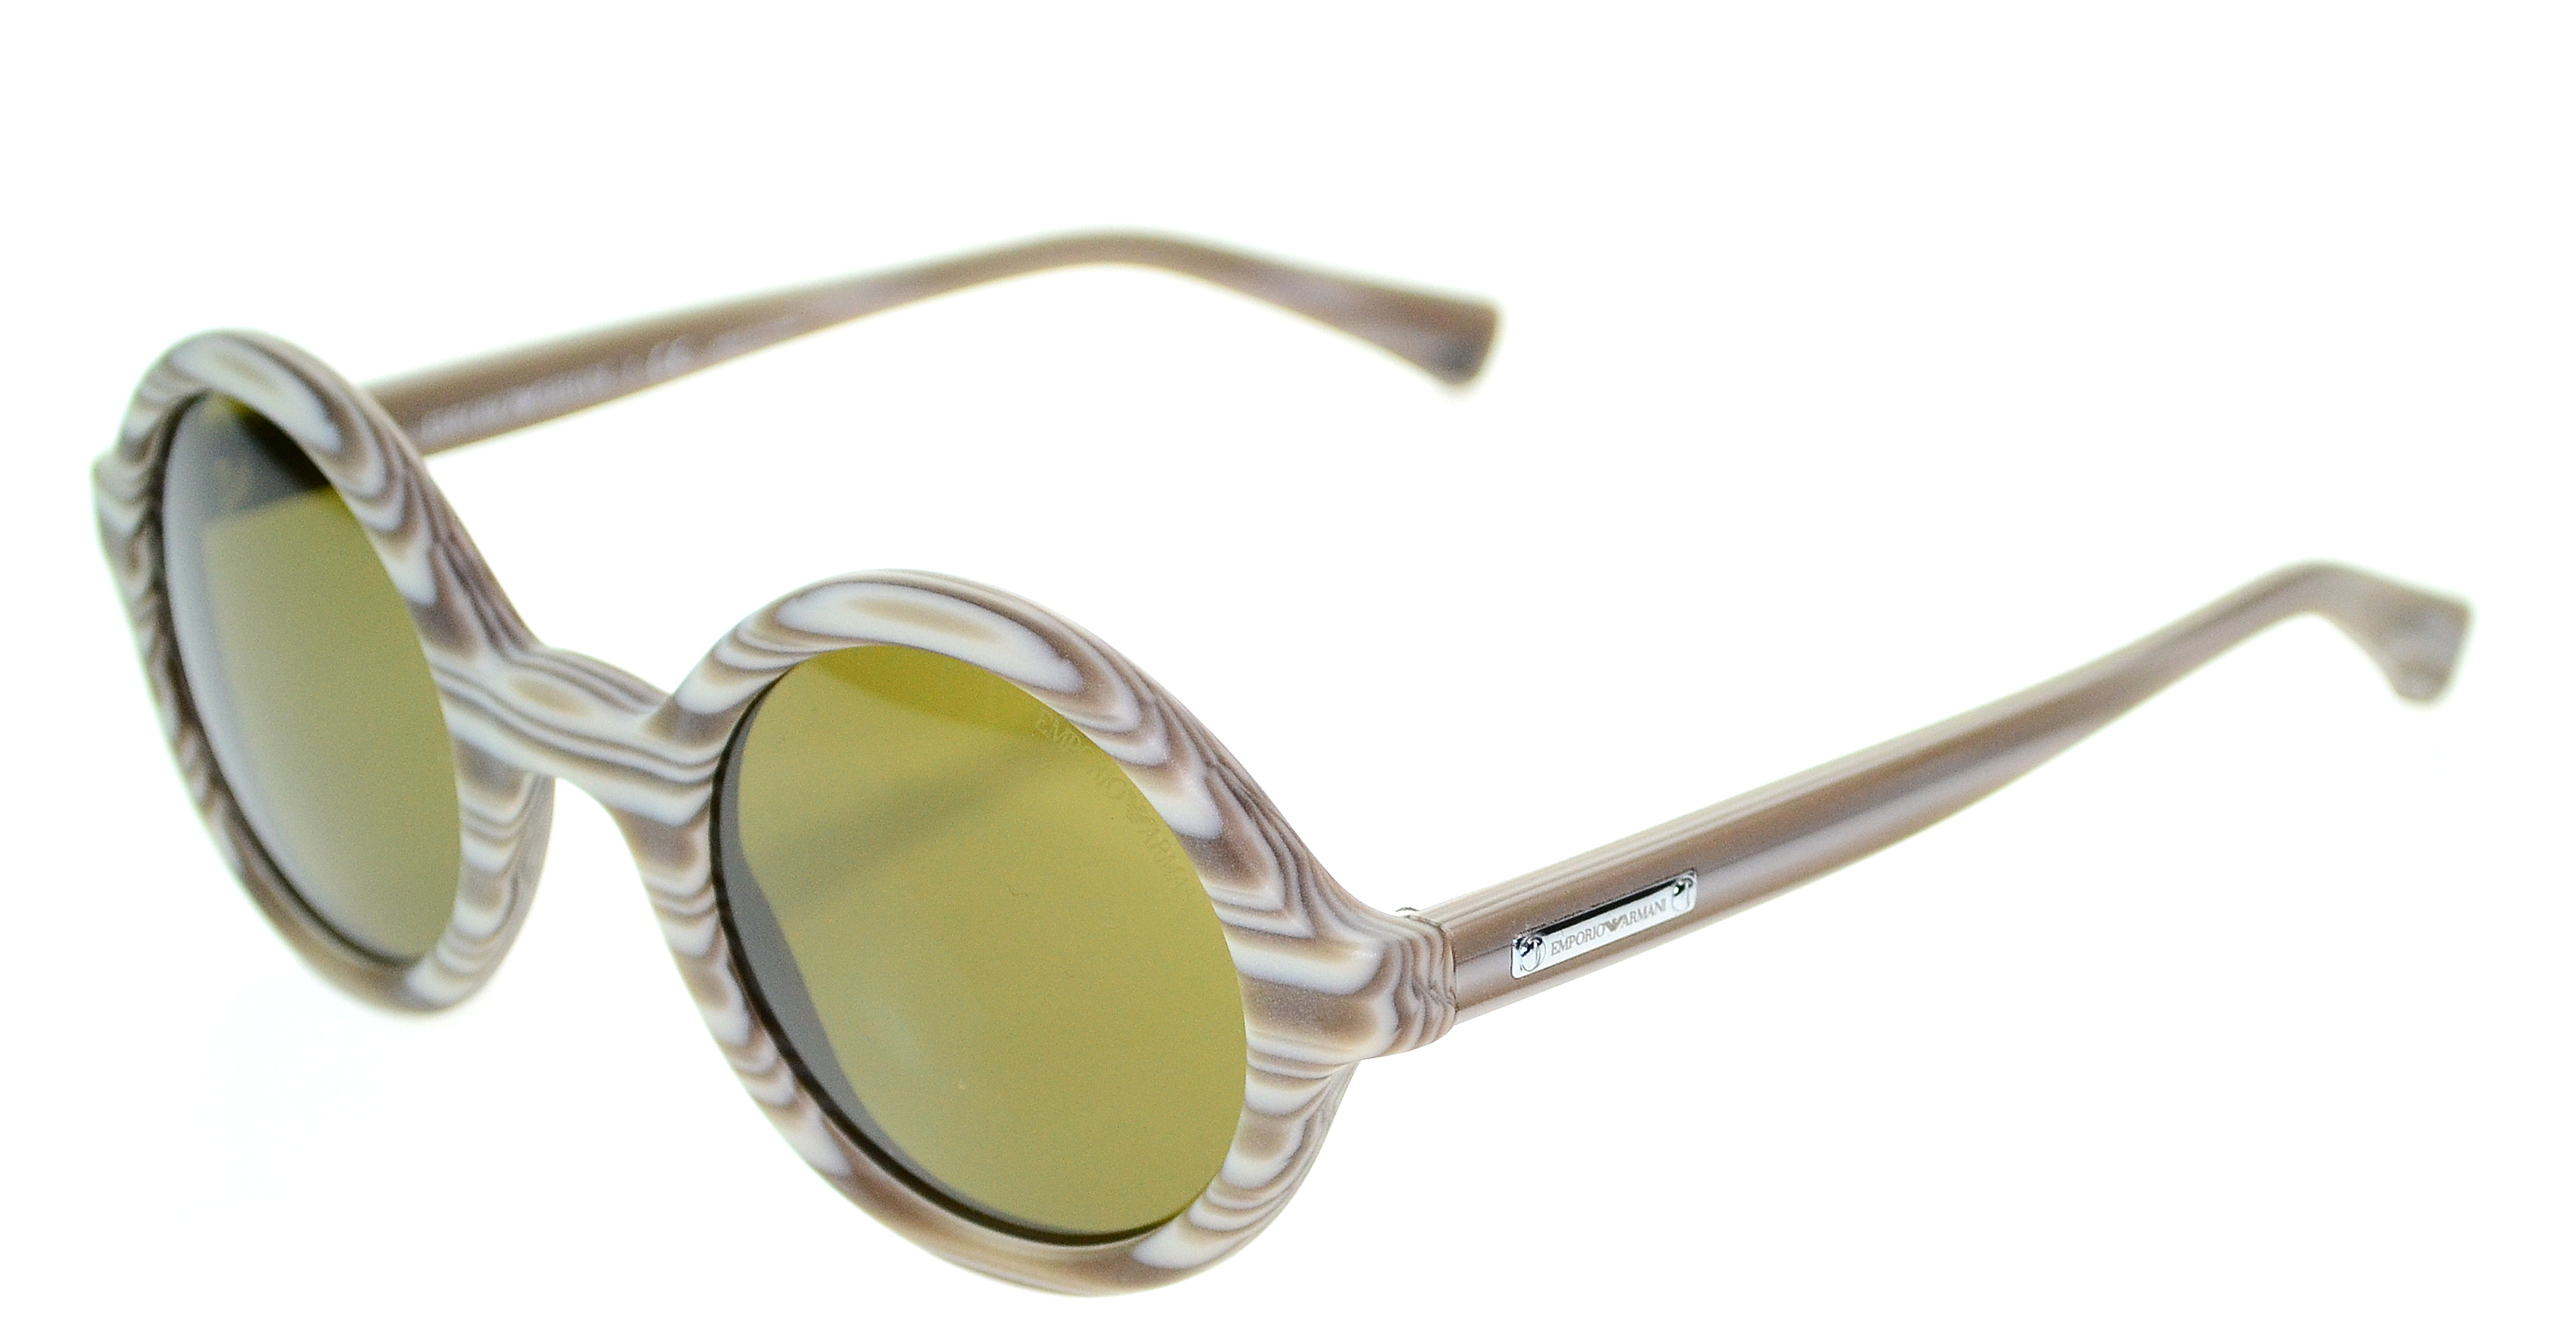 burrberry sunglasses  armani sunglasses